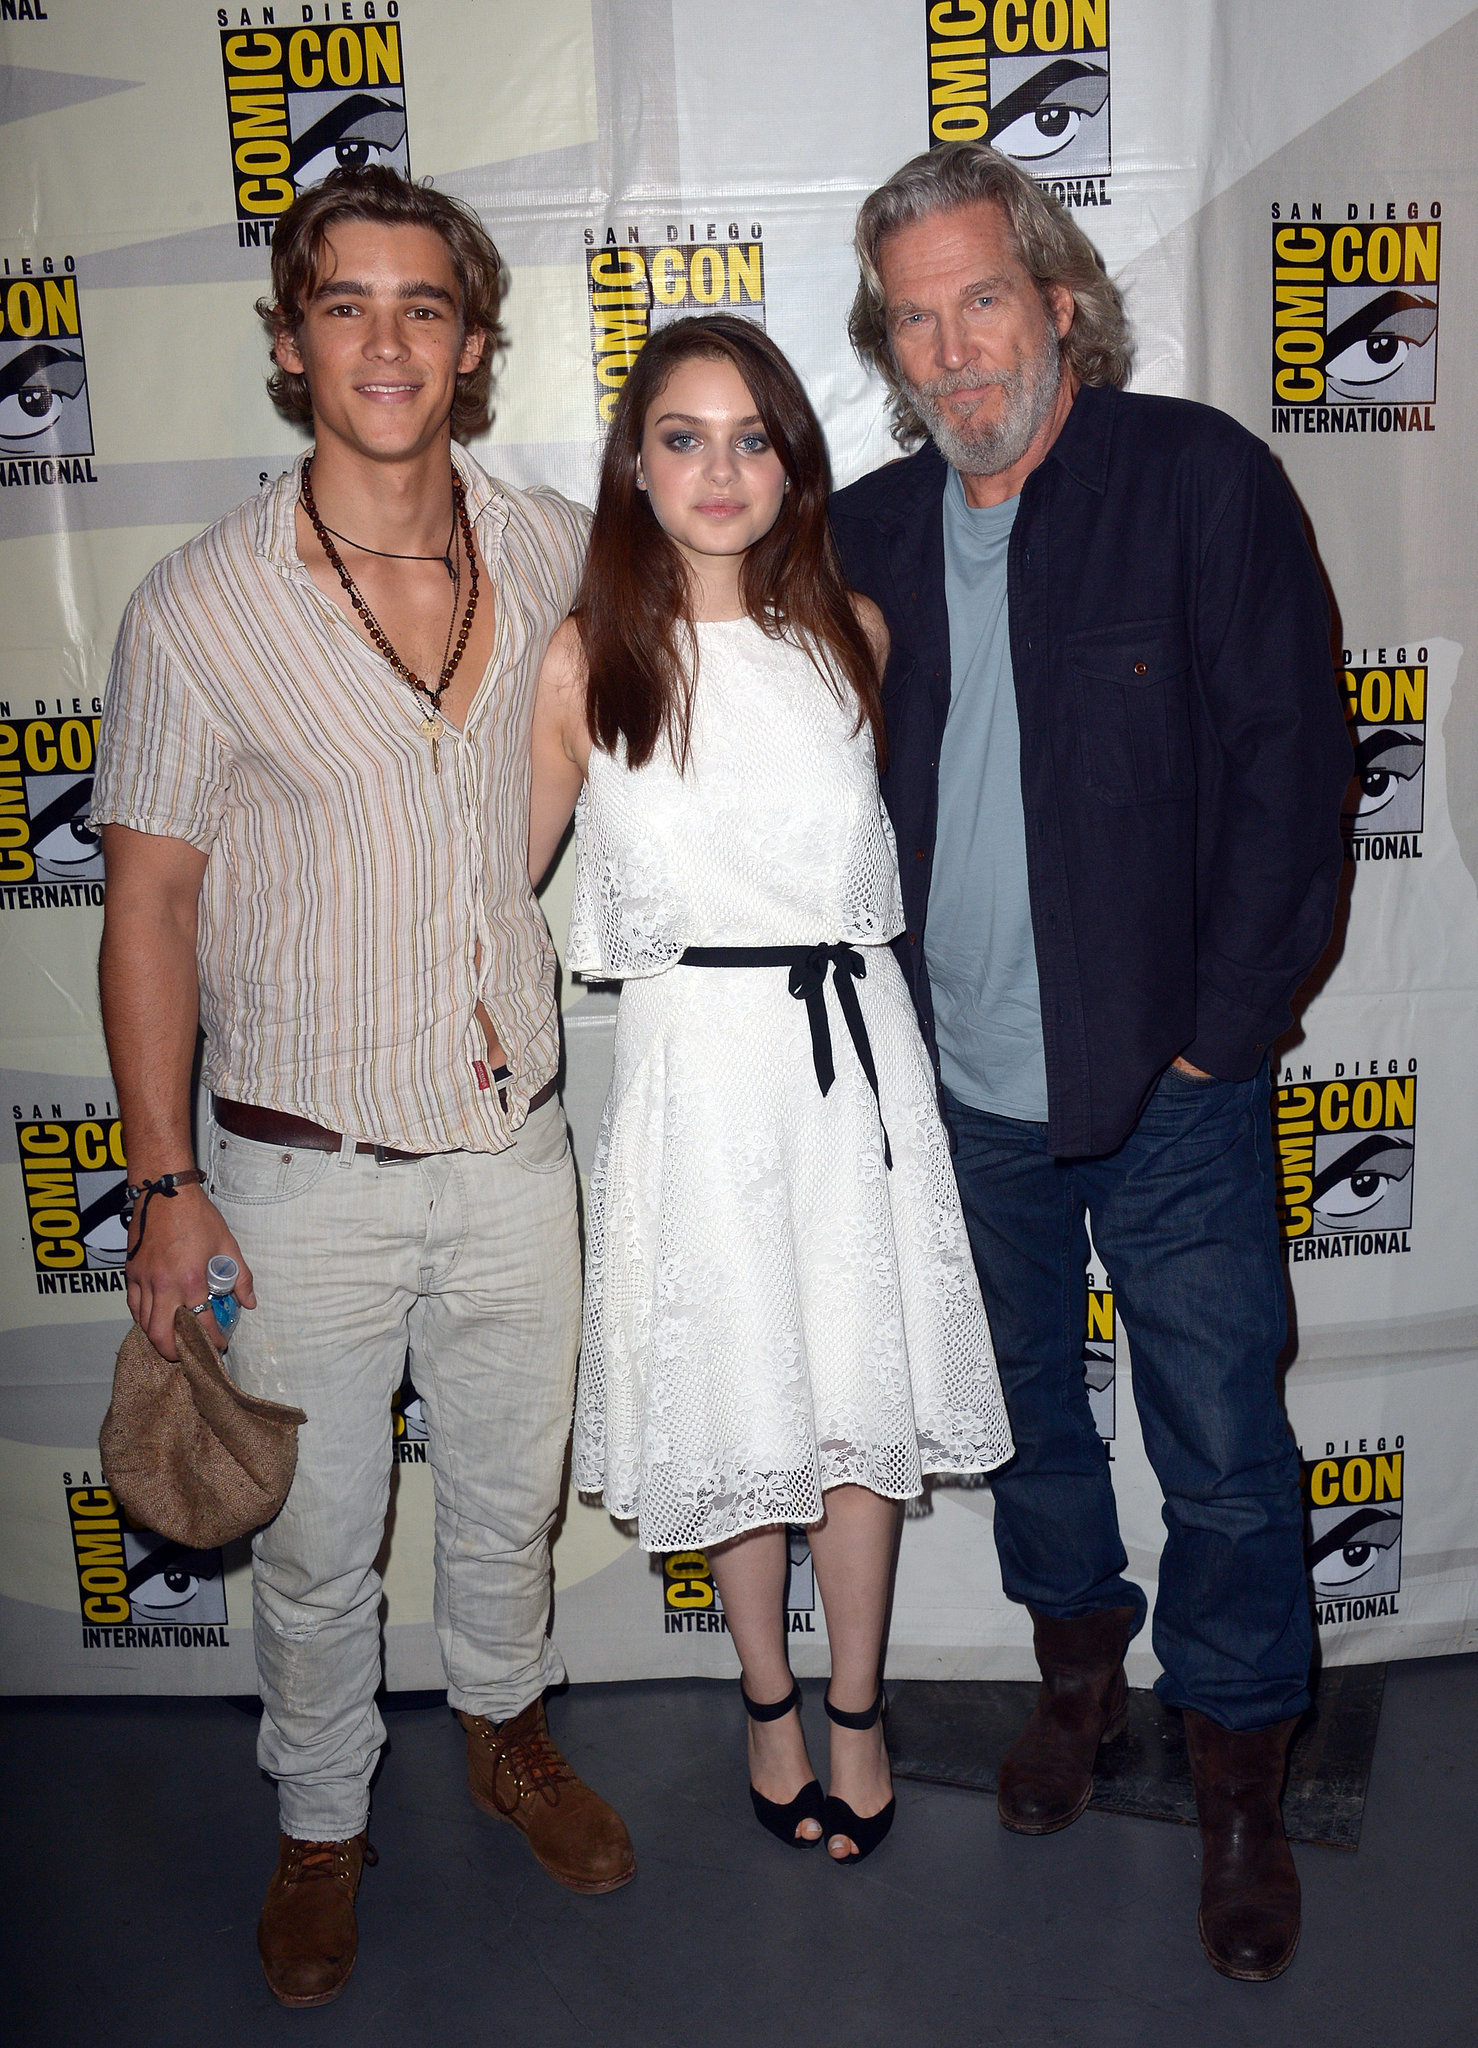 The Giver's Brenton Thwaites, Odeya Rush, and Jeff Bridges came together on Thursday.